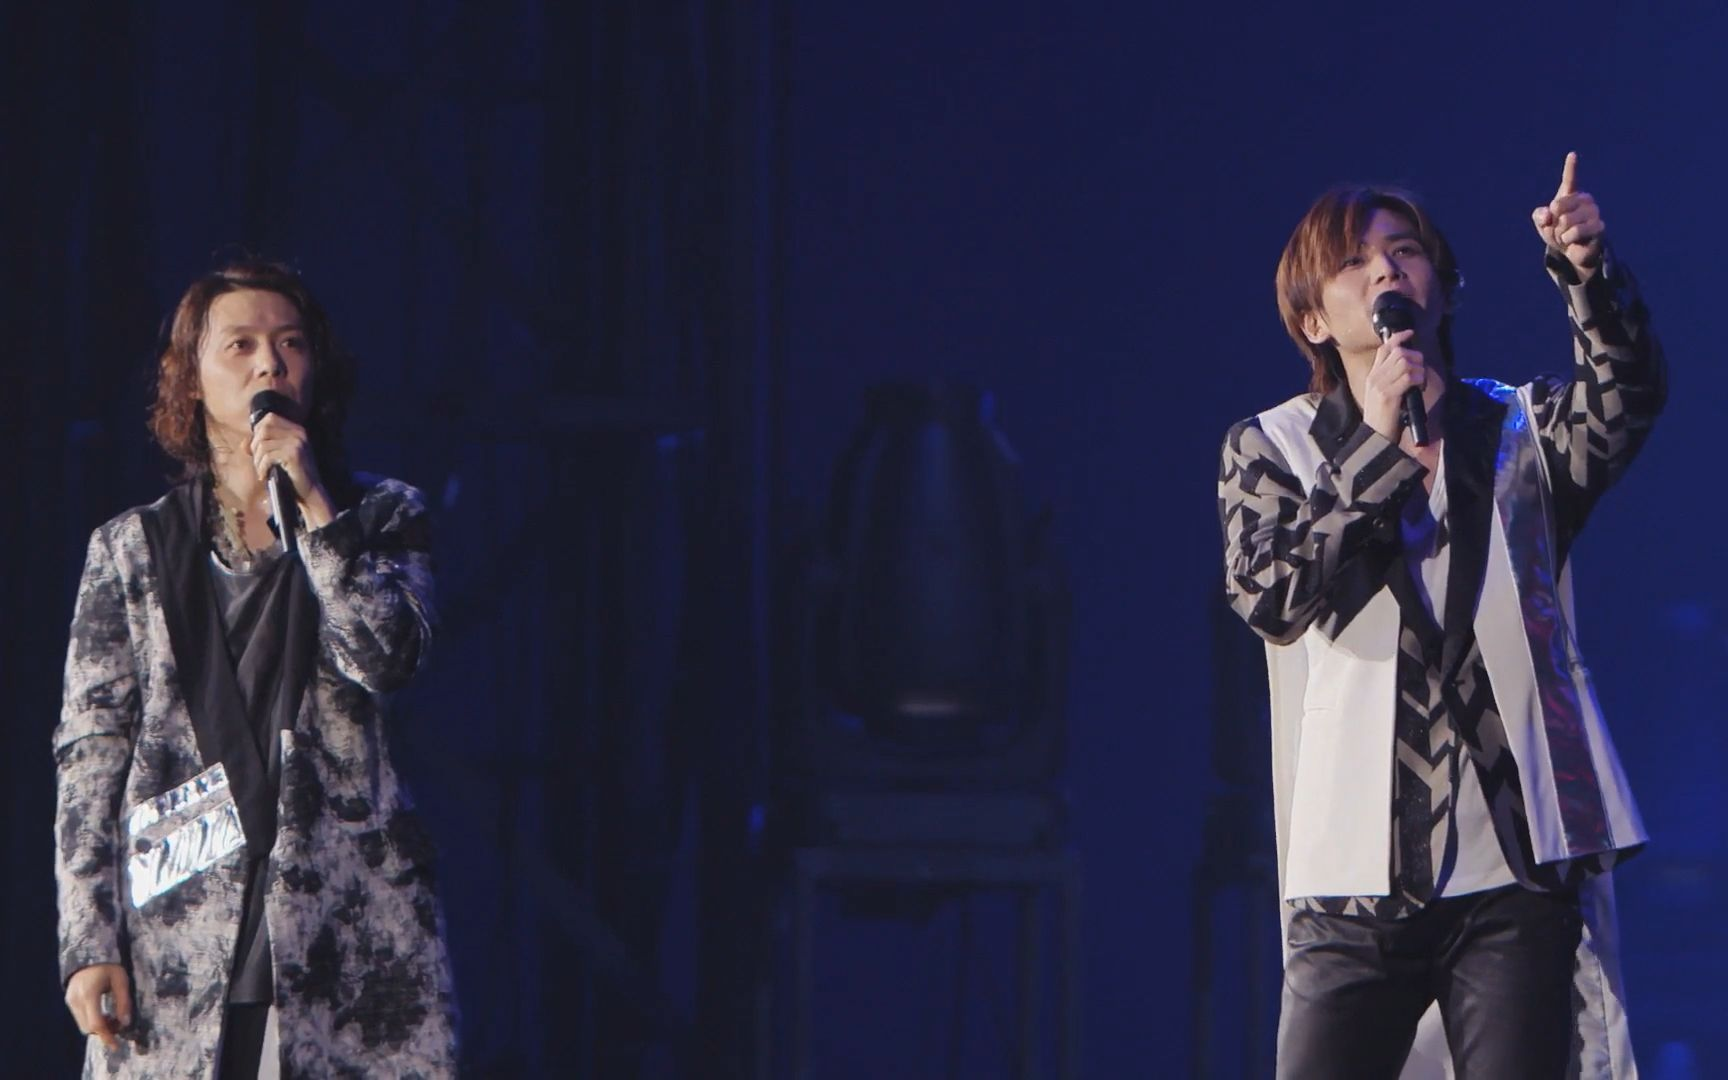 【KinKi Kids】Fall Dance (TUK)